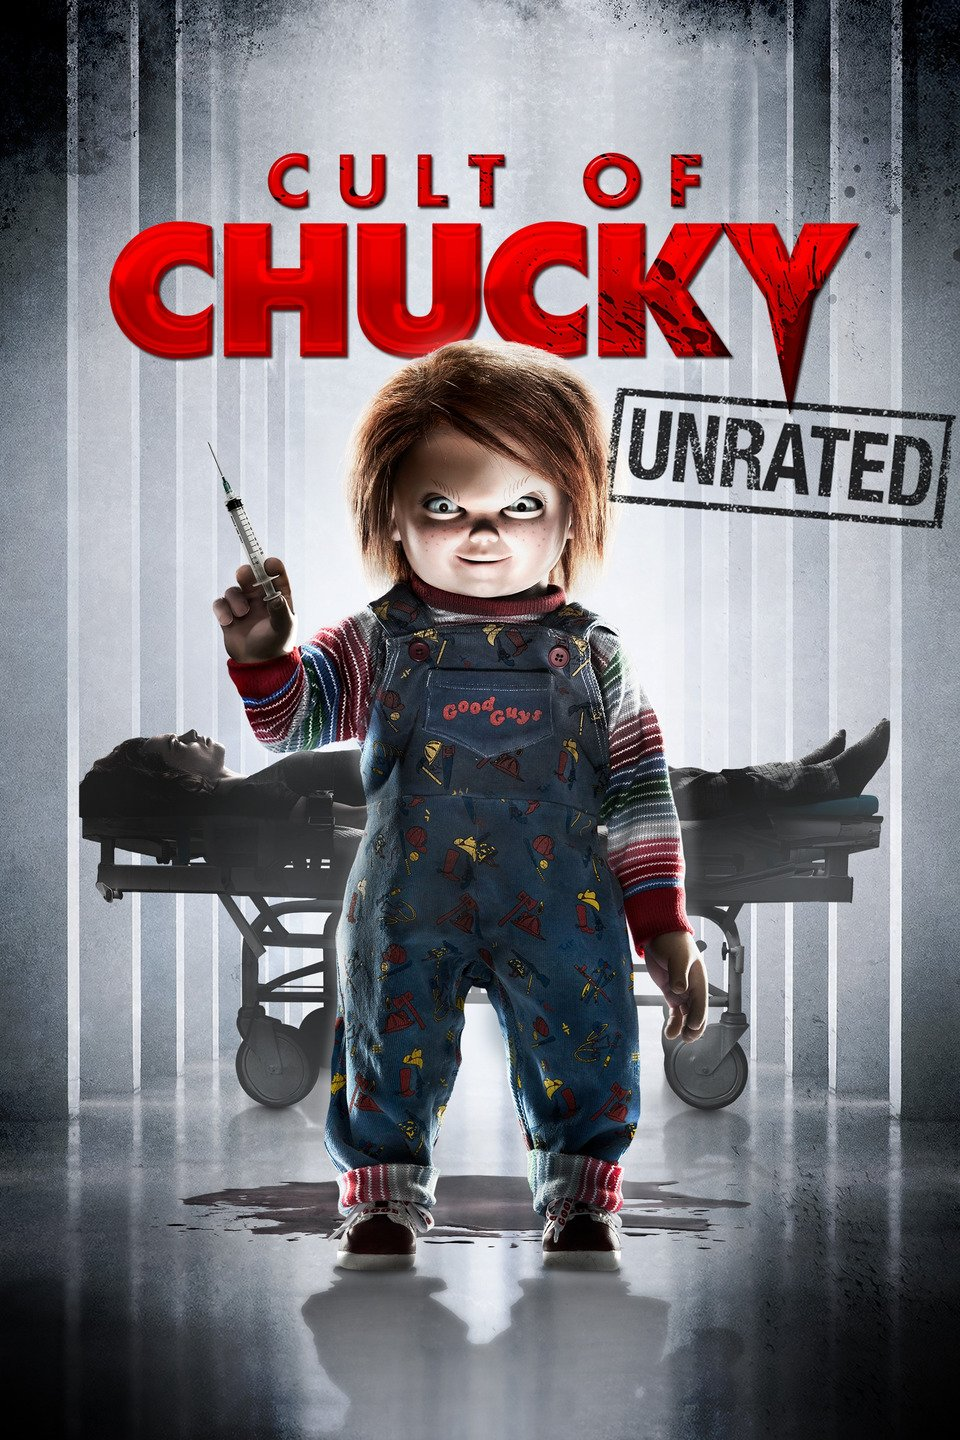 Child's Play 7: Cult of Chucky (2017)